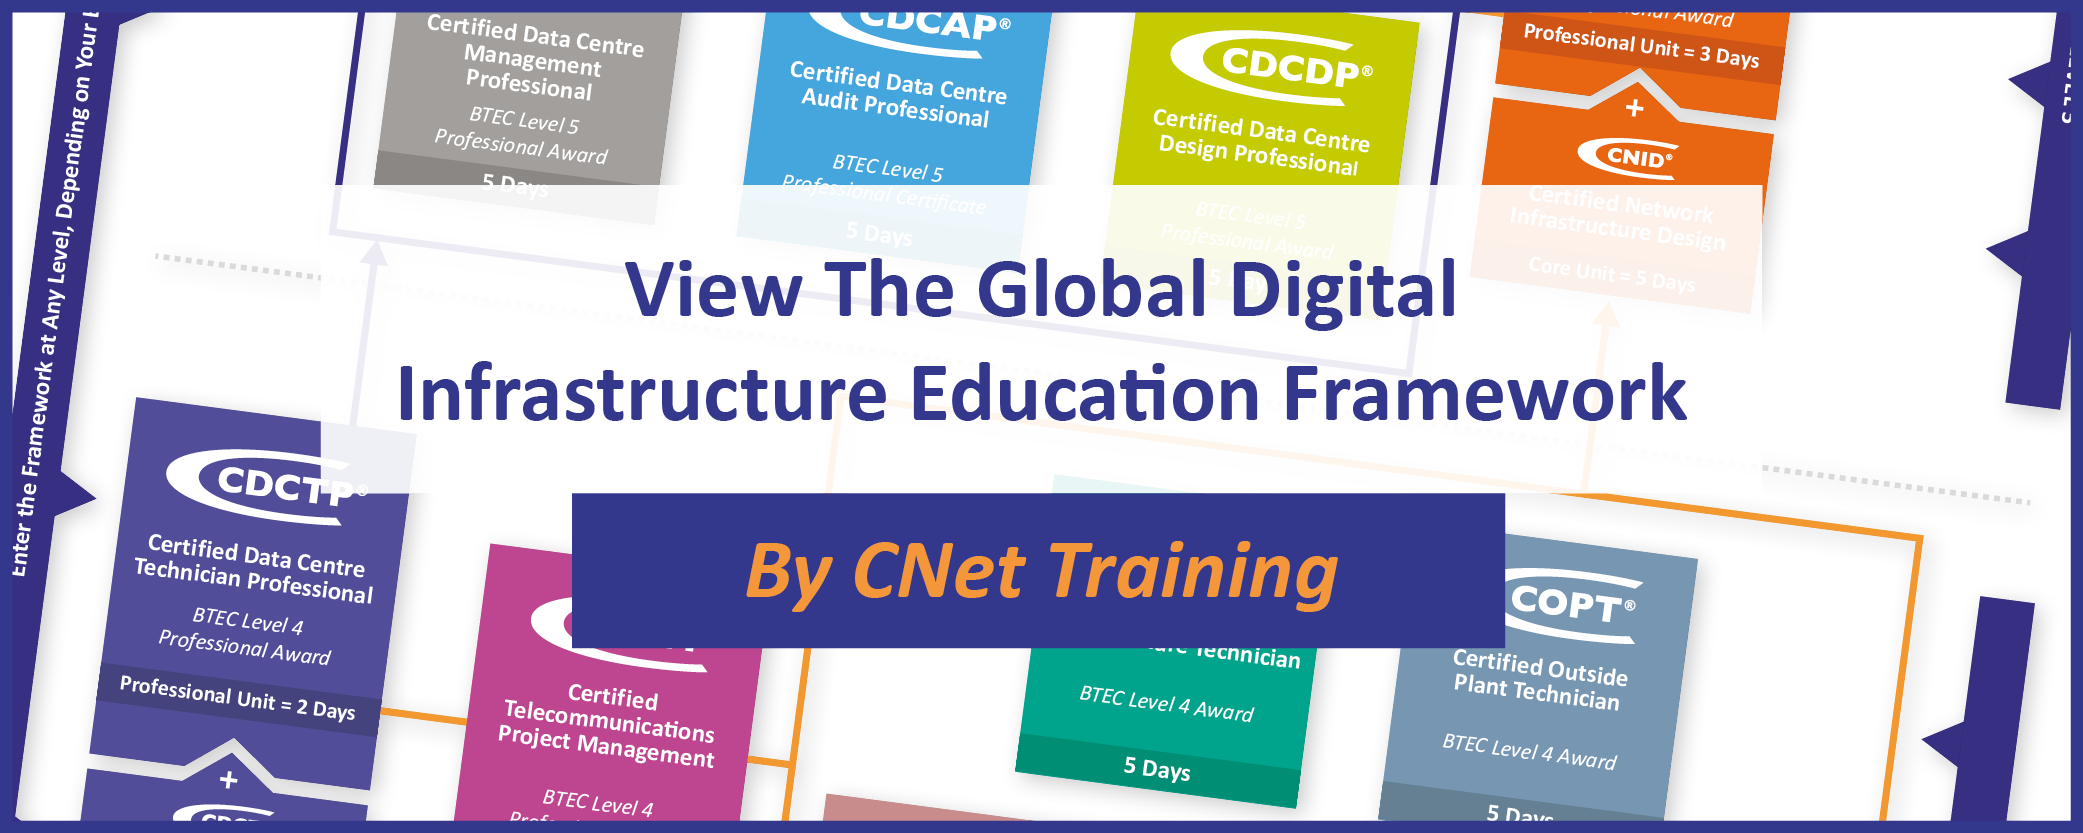 Cnet training data centre network infrastructure training designed specifically ccuart Image collections